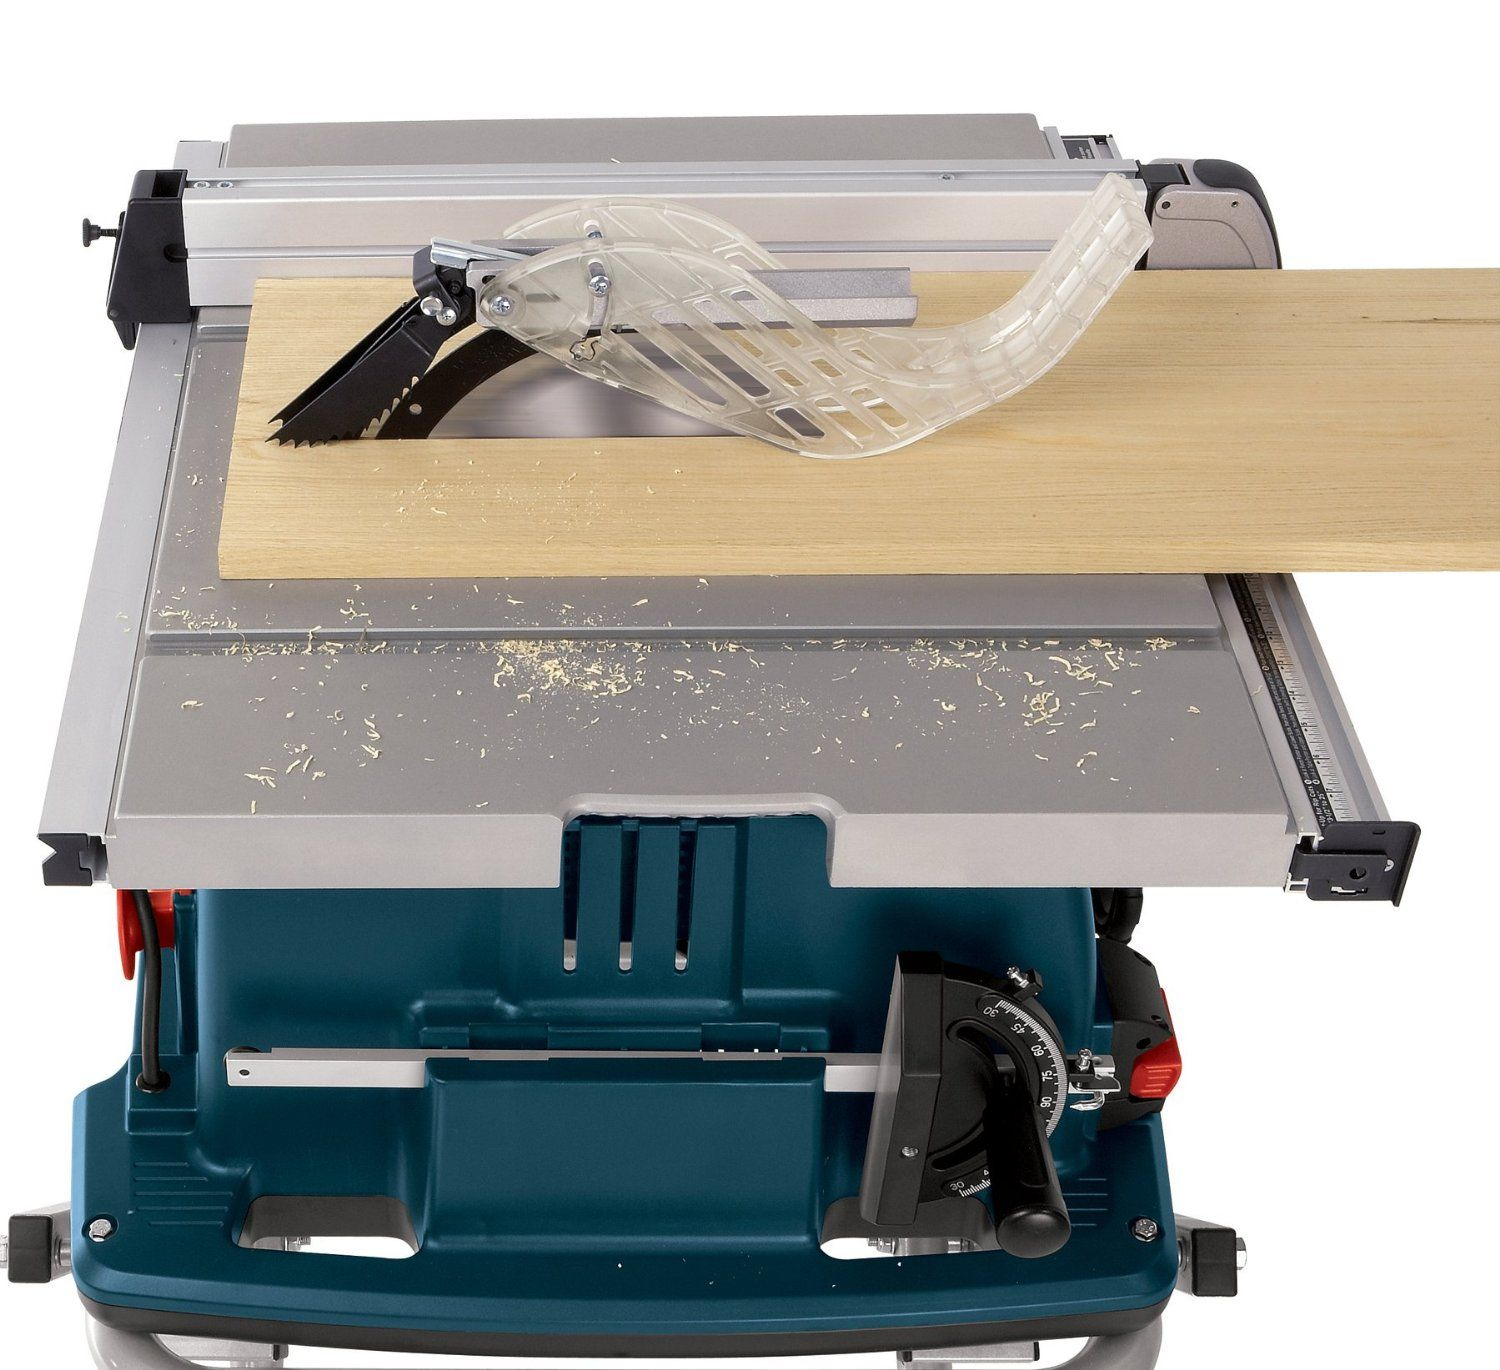 A dull blade would hinder accuracy and performance of a table saw a dull blade would hinder accuracy and performance of a table saw and may cause adjustment greentooth Choice Image